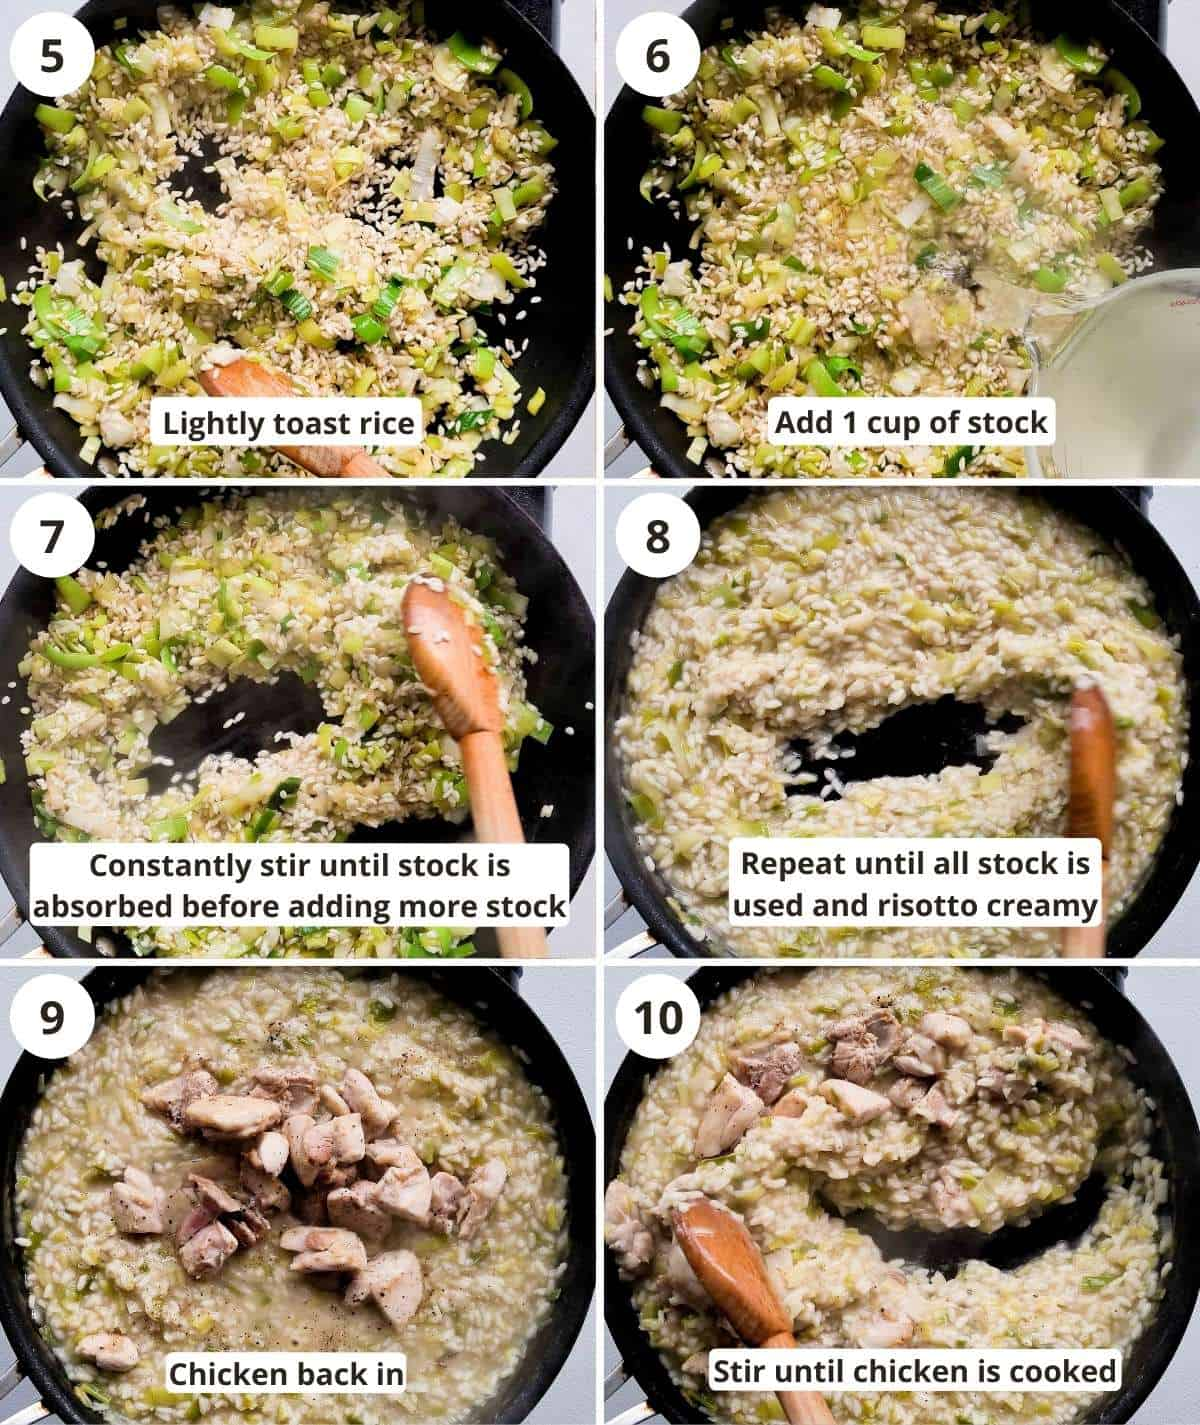 A 6 step collage of making creamy risotto